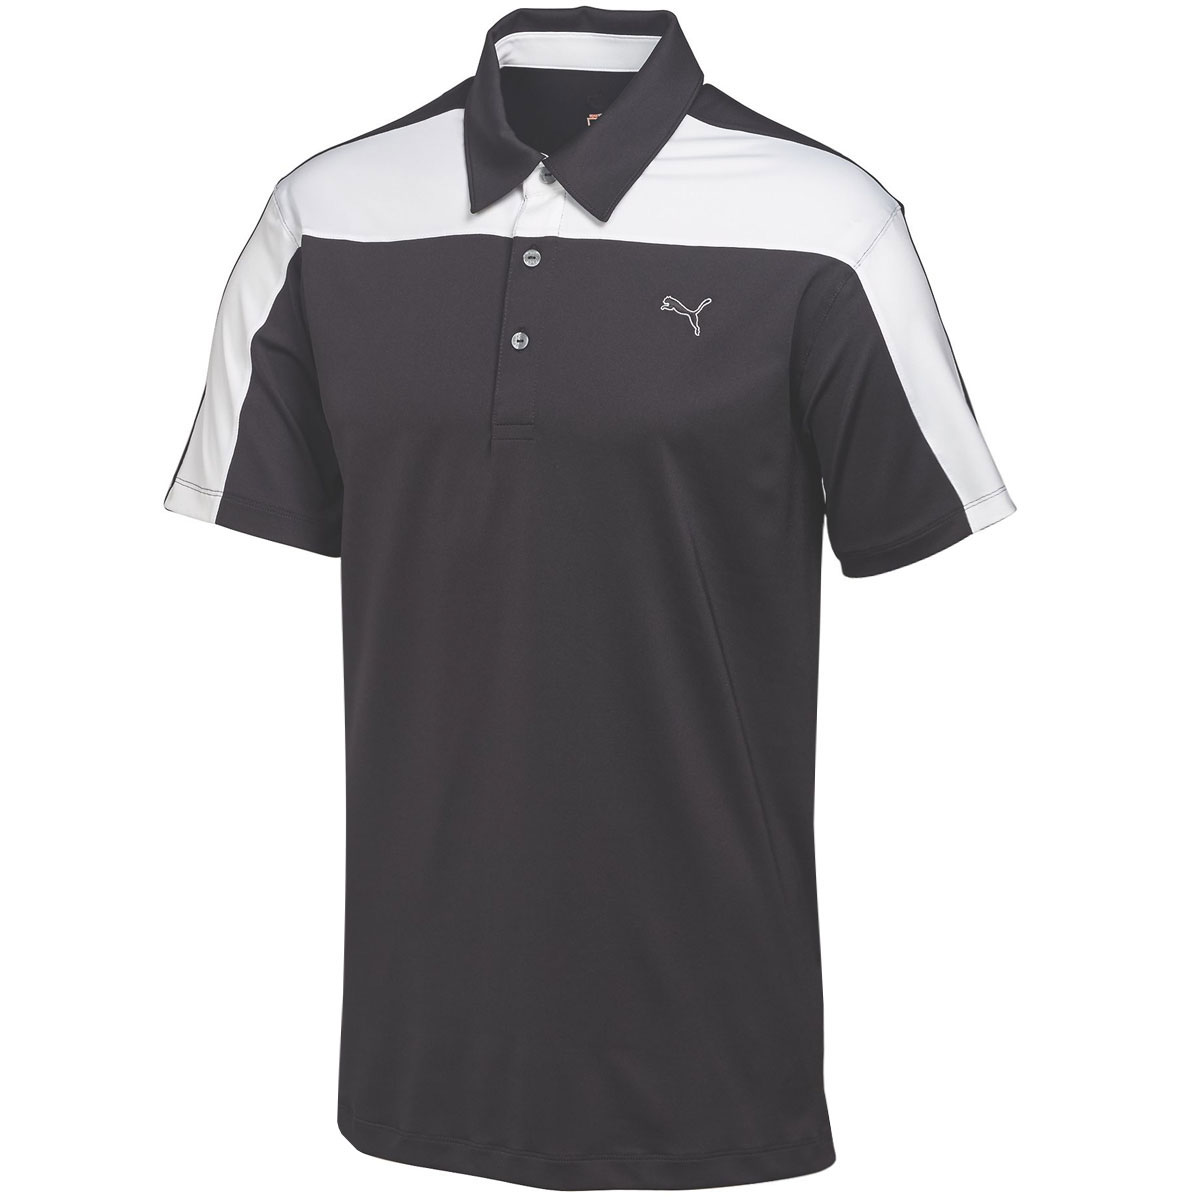 Puma golf mens cb tech golf polo shirt drycell performance for Mens puma golf shirts